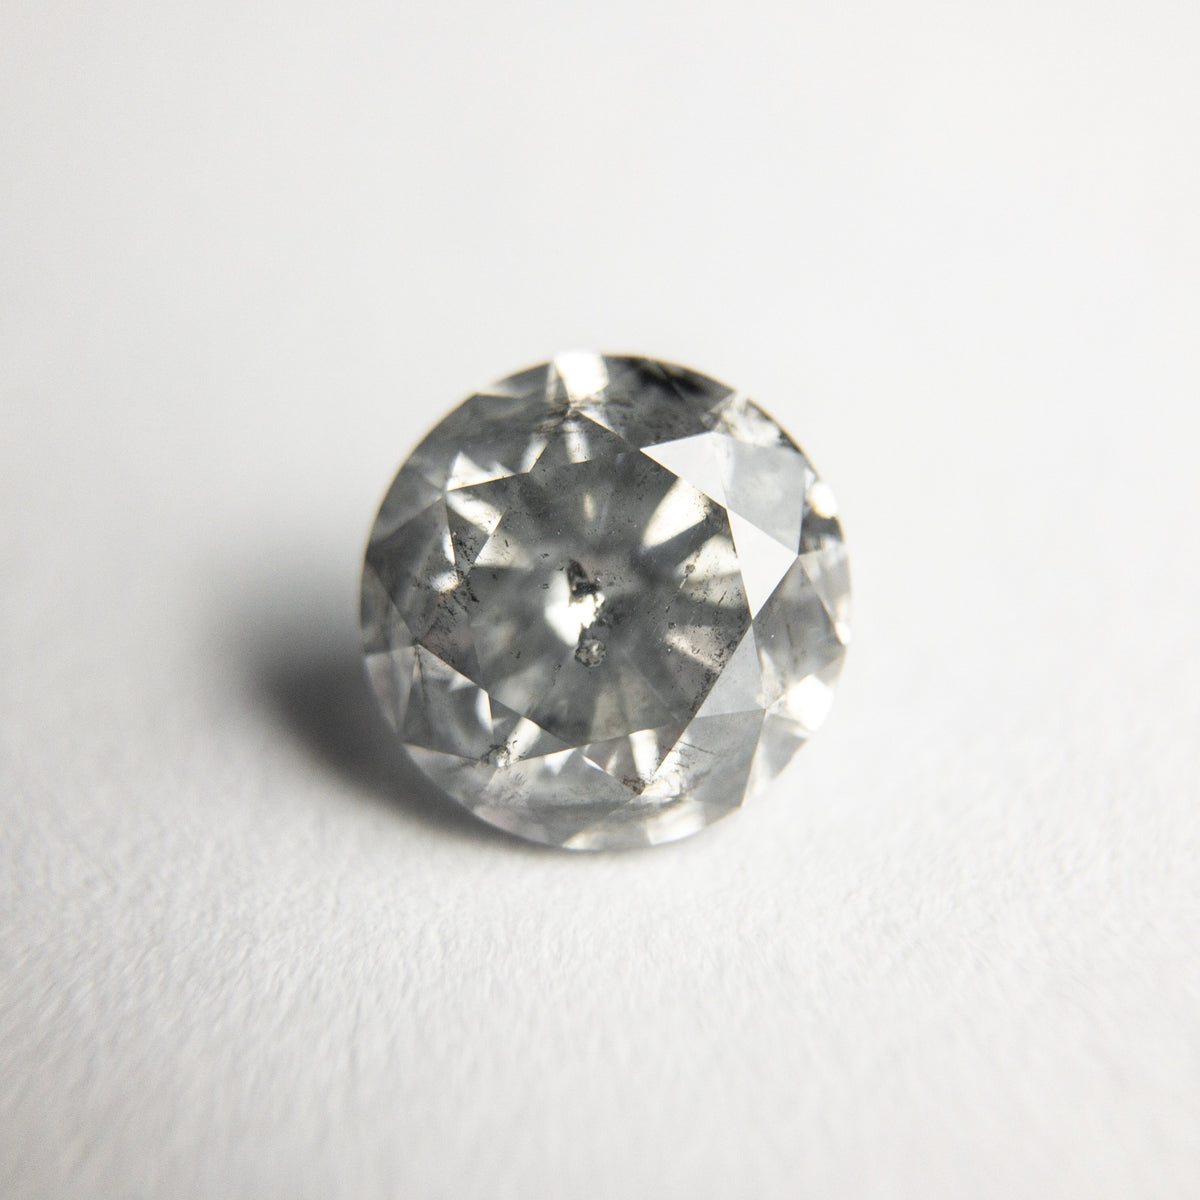 1.36ct 6.88x6.81x4.41mm Round Brilliant 18310-07